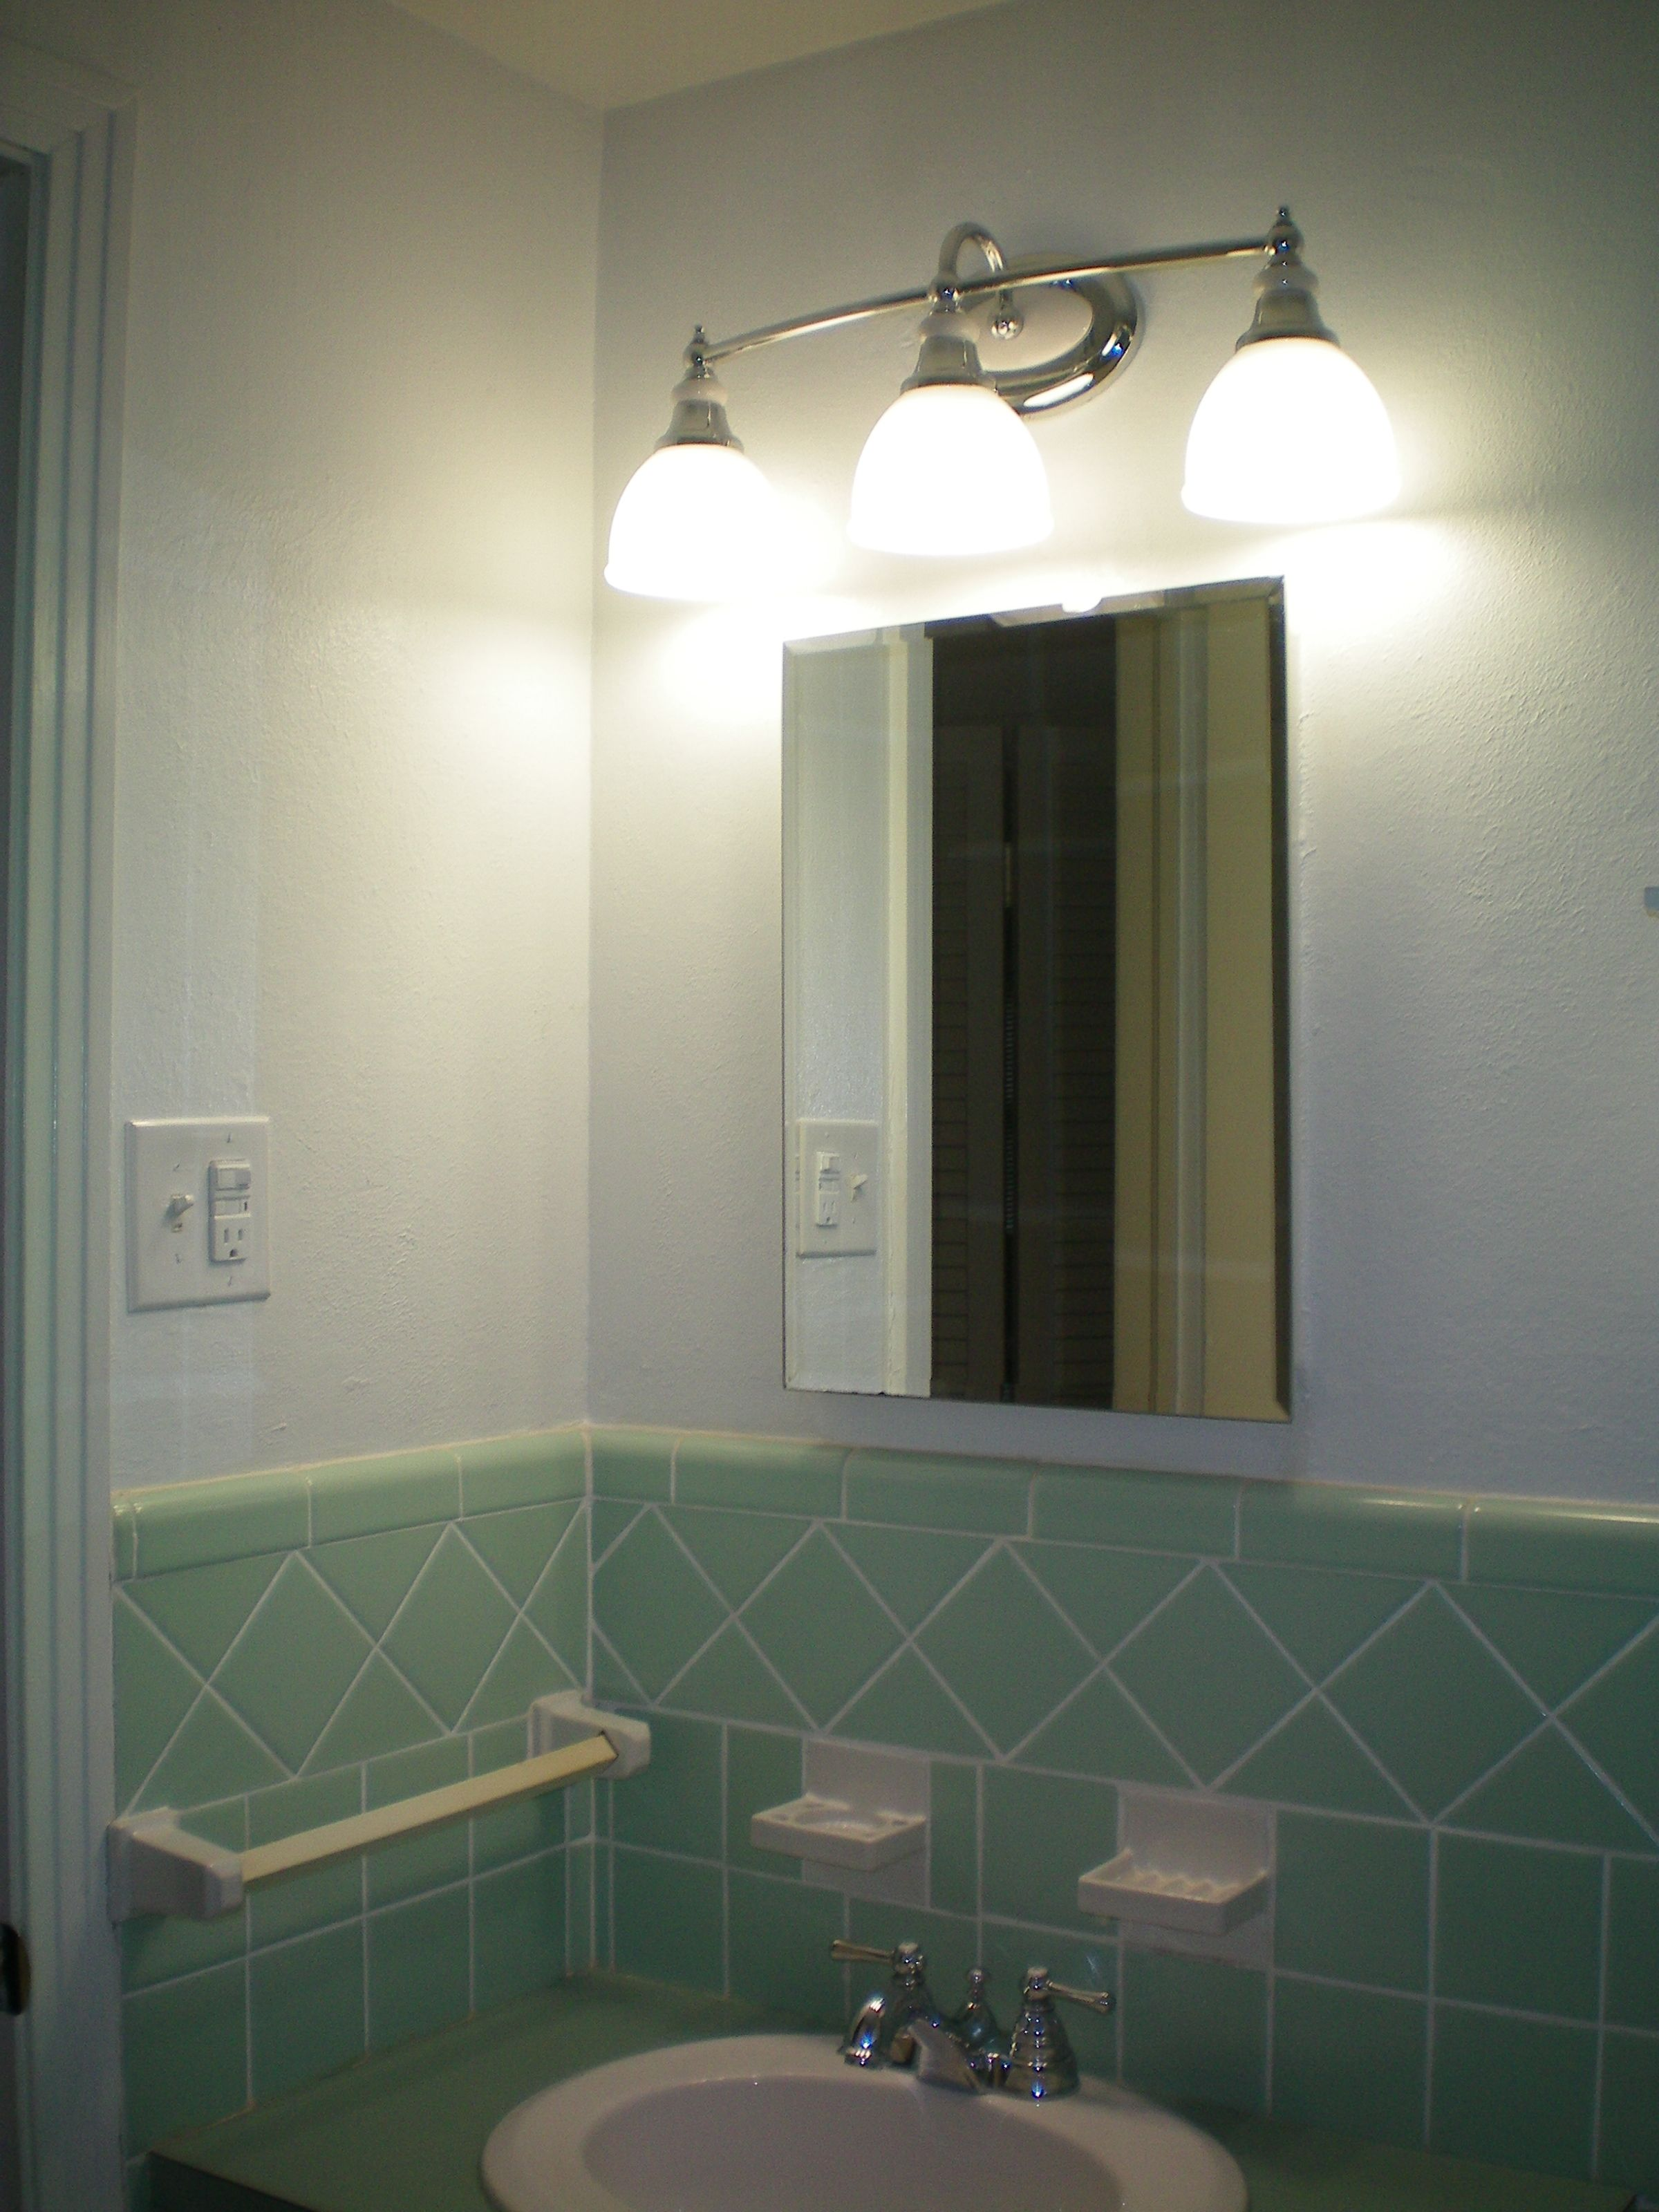 New light fixture and outlets to update our 1950s bathroom